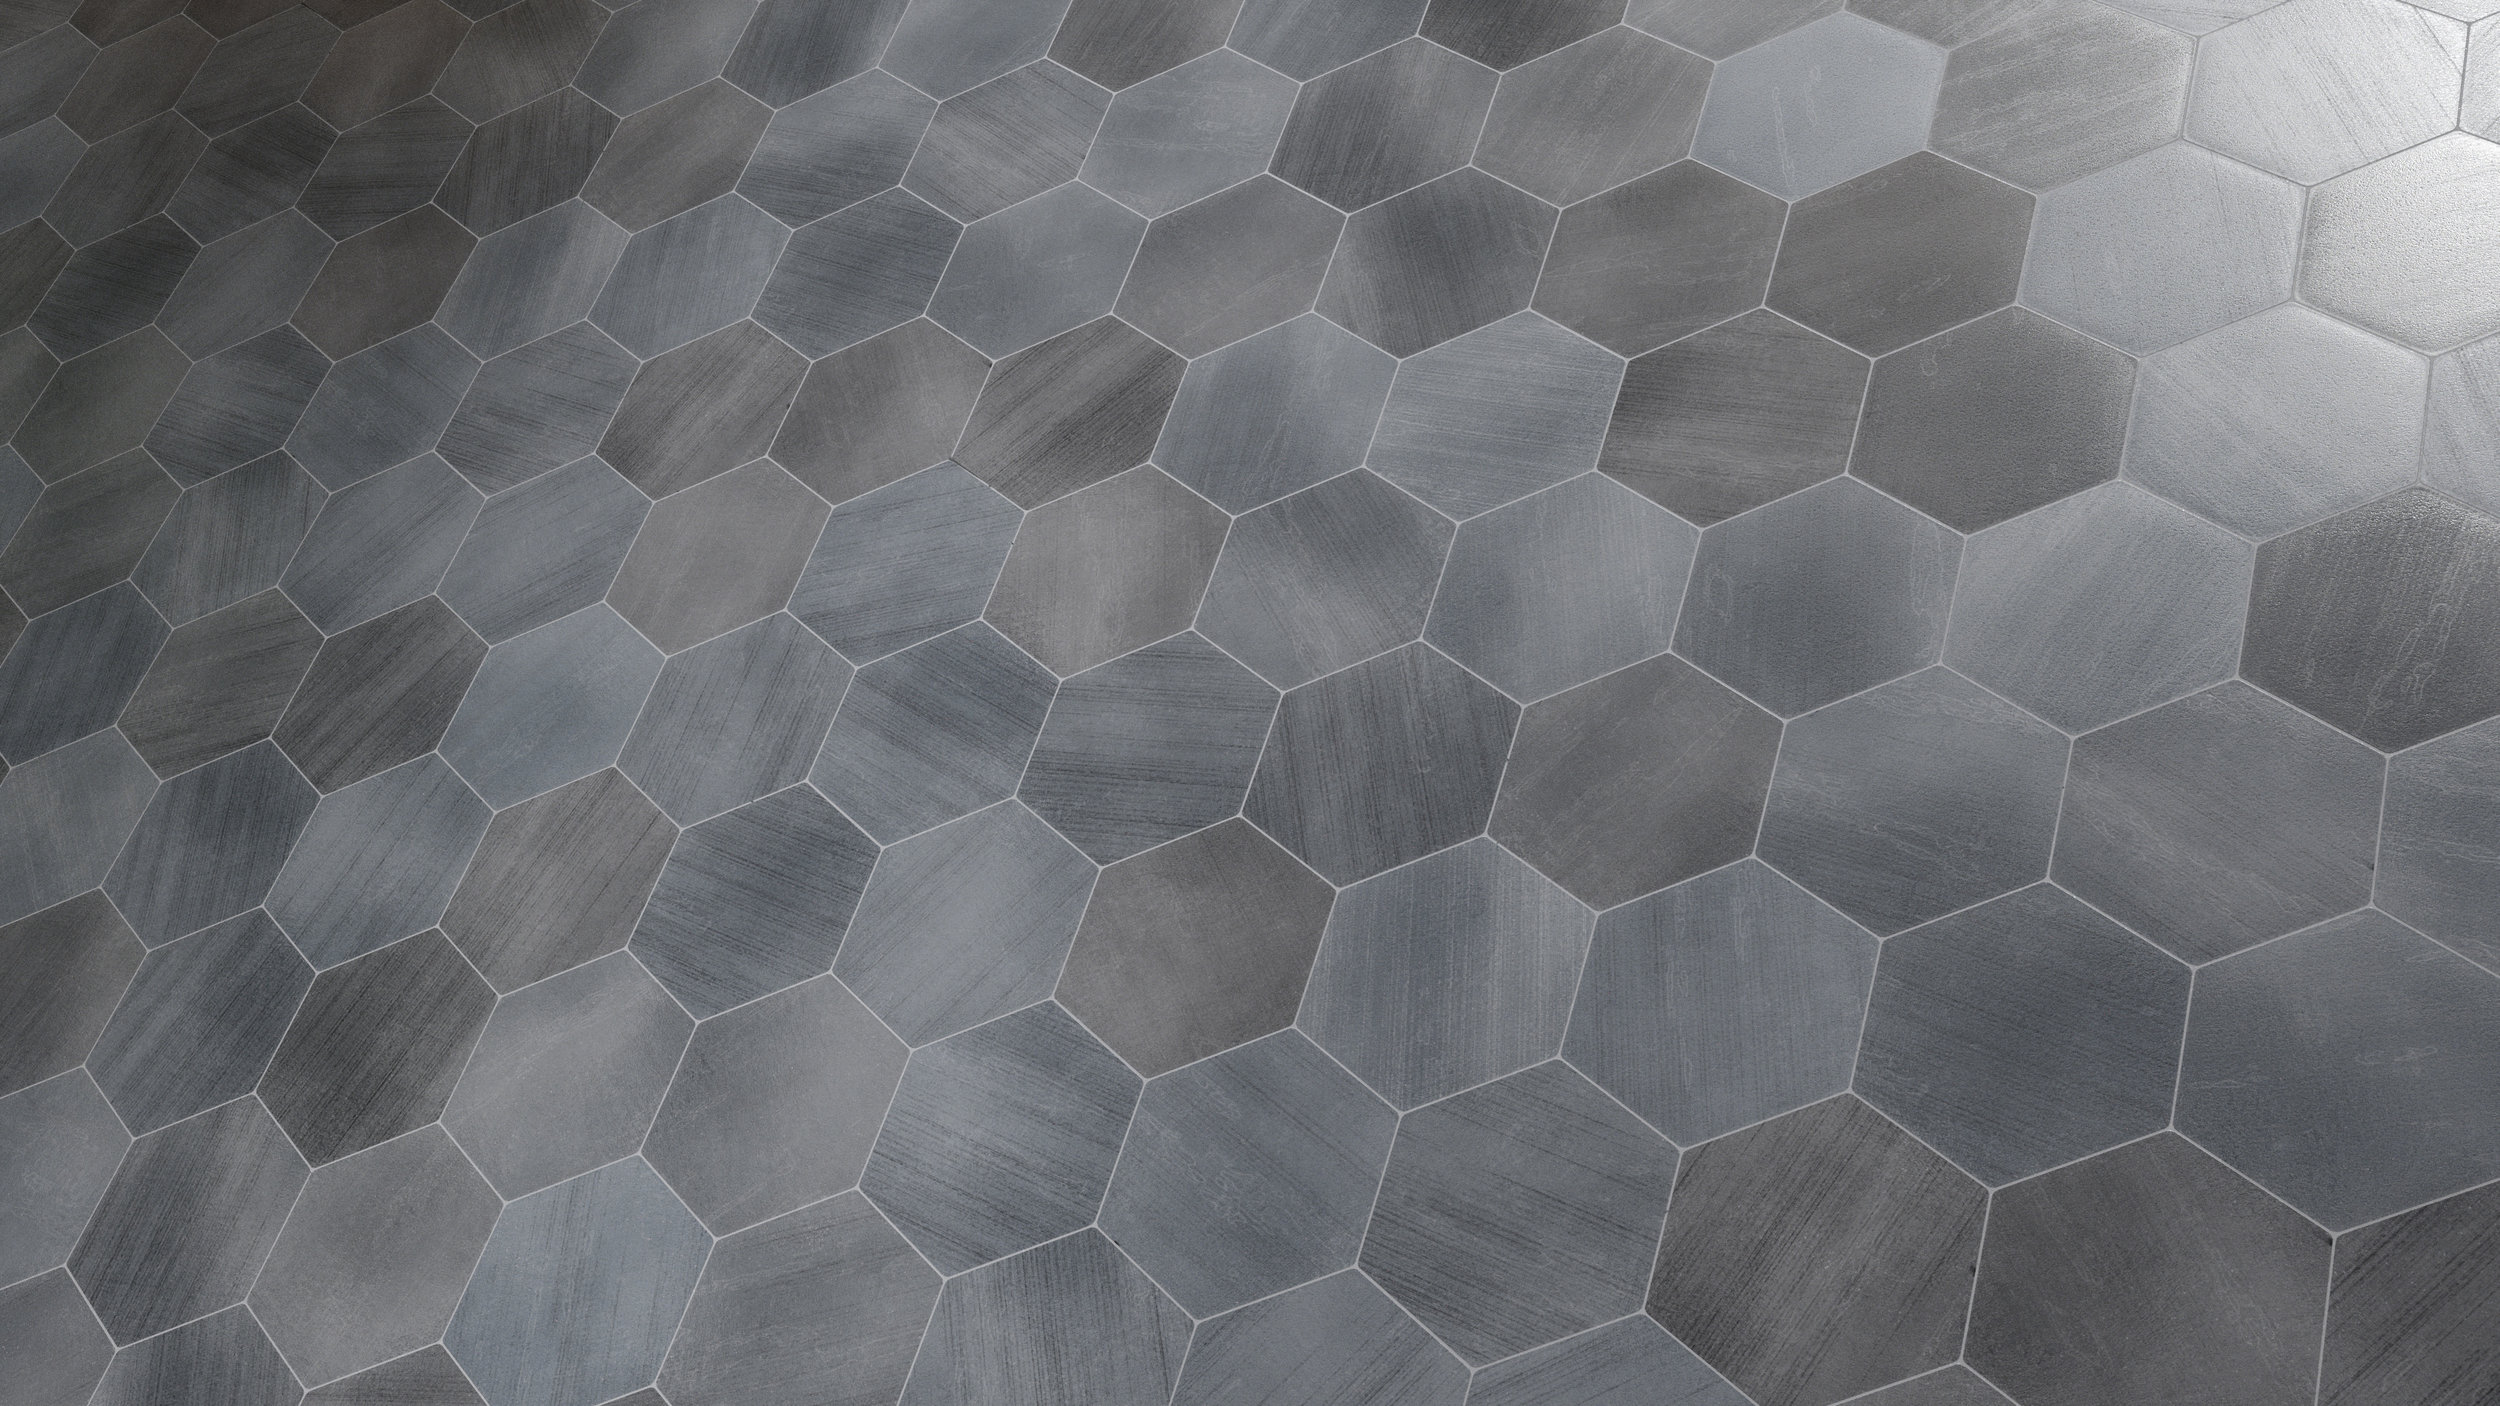 TexturesCom_Hexagonal_Cement_Tiles_header.jpg